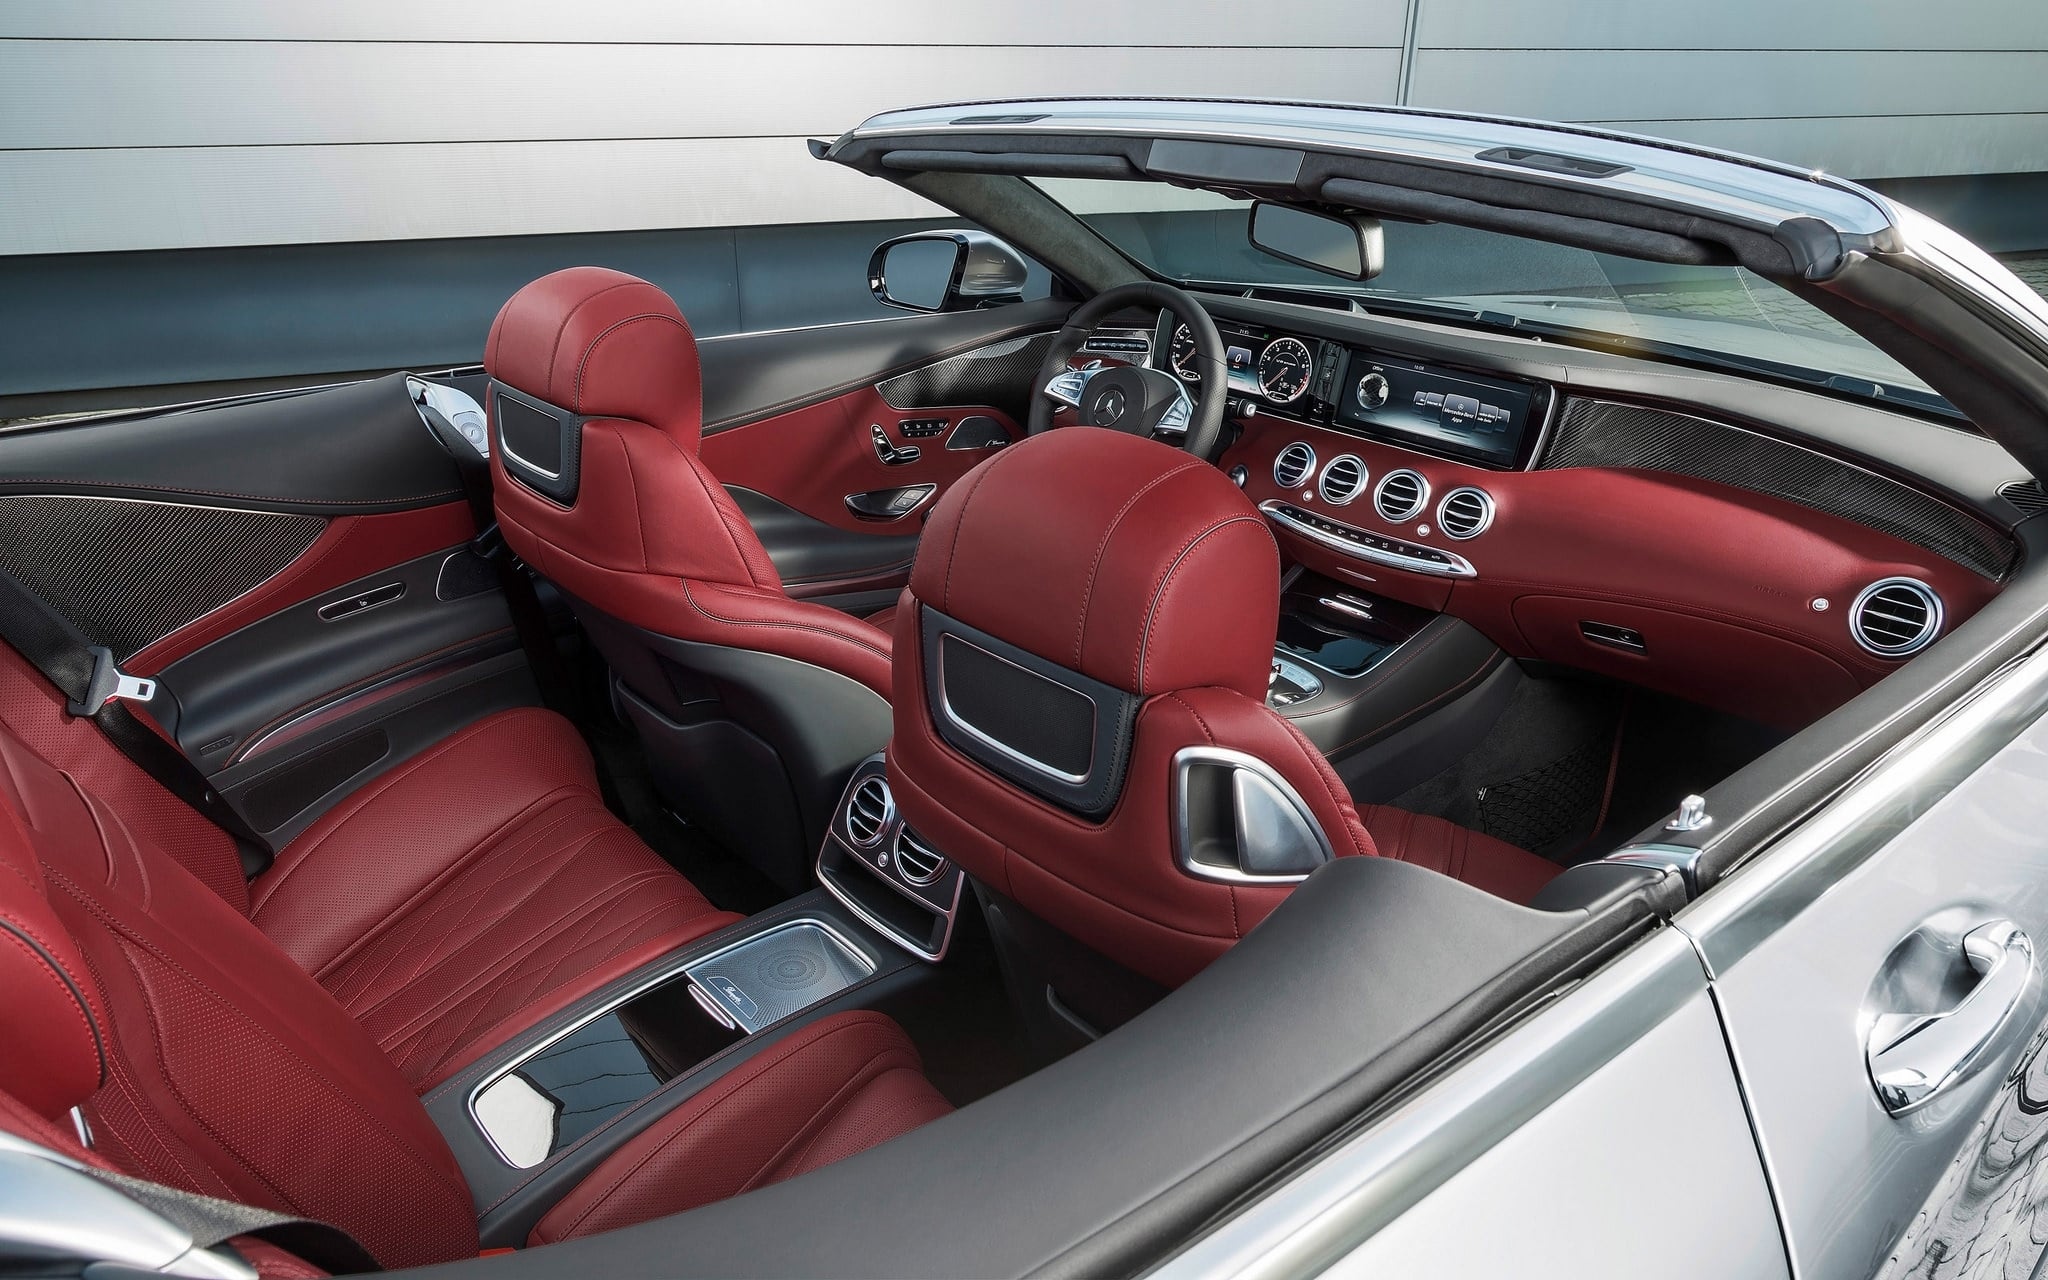 2016 Mercedes-AMG S63 cabriolet interior High Quality wallpapers